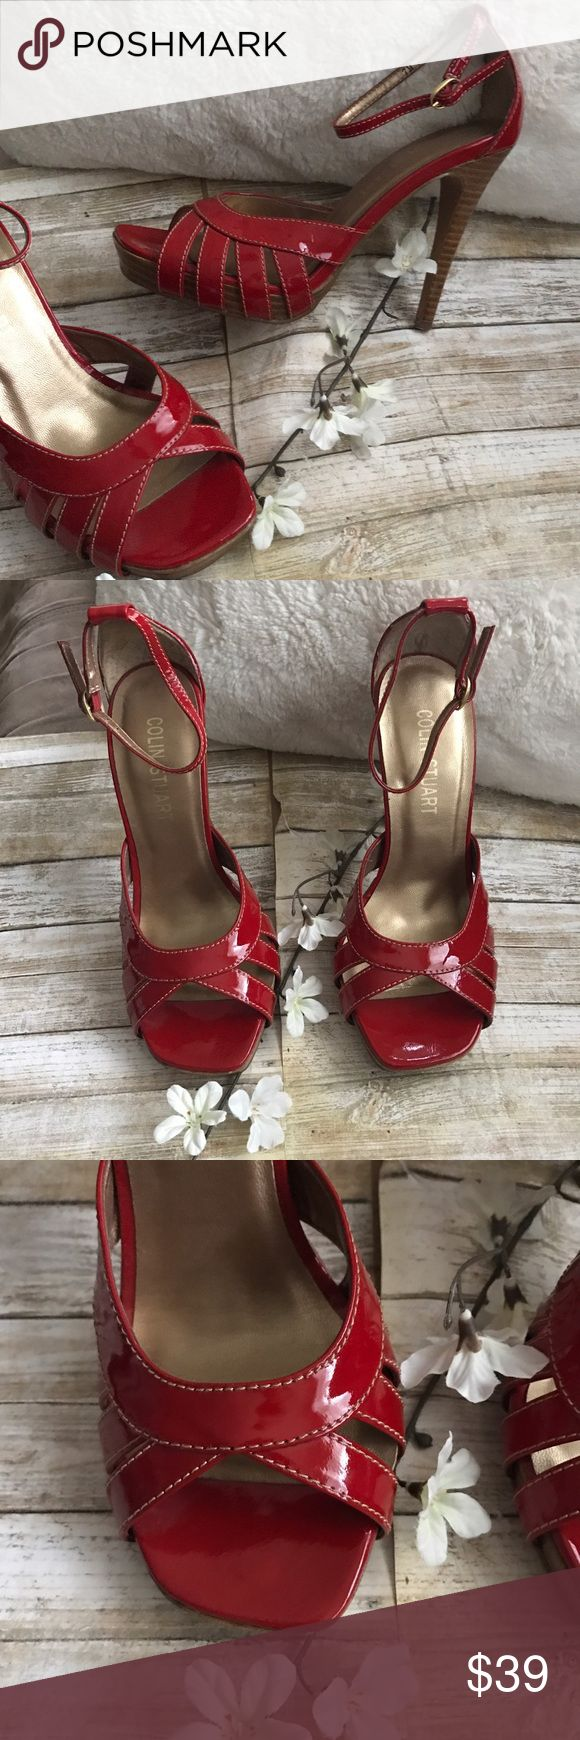 Colin Stuart red heel sandals shoes SZ 7M Colin Stuart ( Victoria secret ) patent red leather Heel sandals, in size 7M never used/ see pictures as part of the description/feel free to ask questions. Colin Stuart Shoes Heels